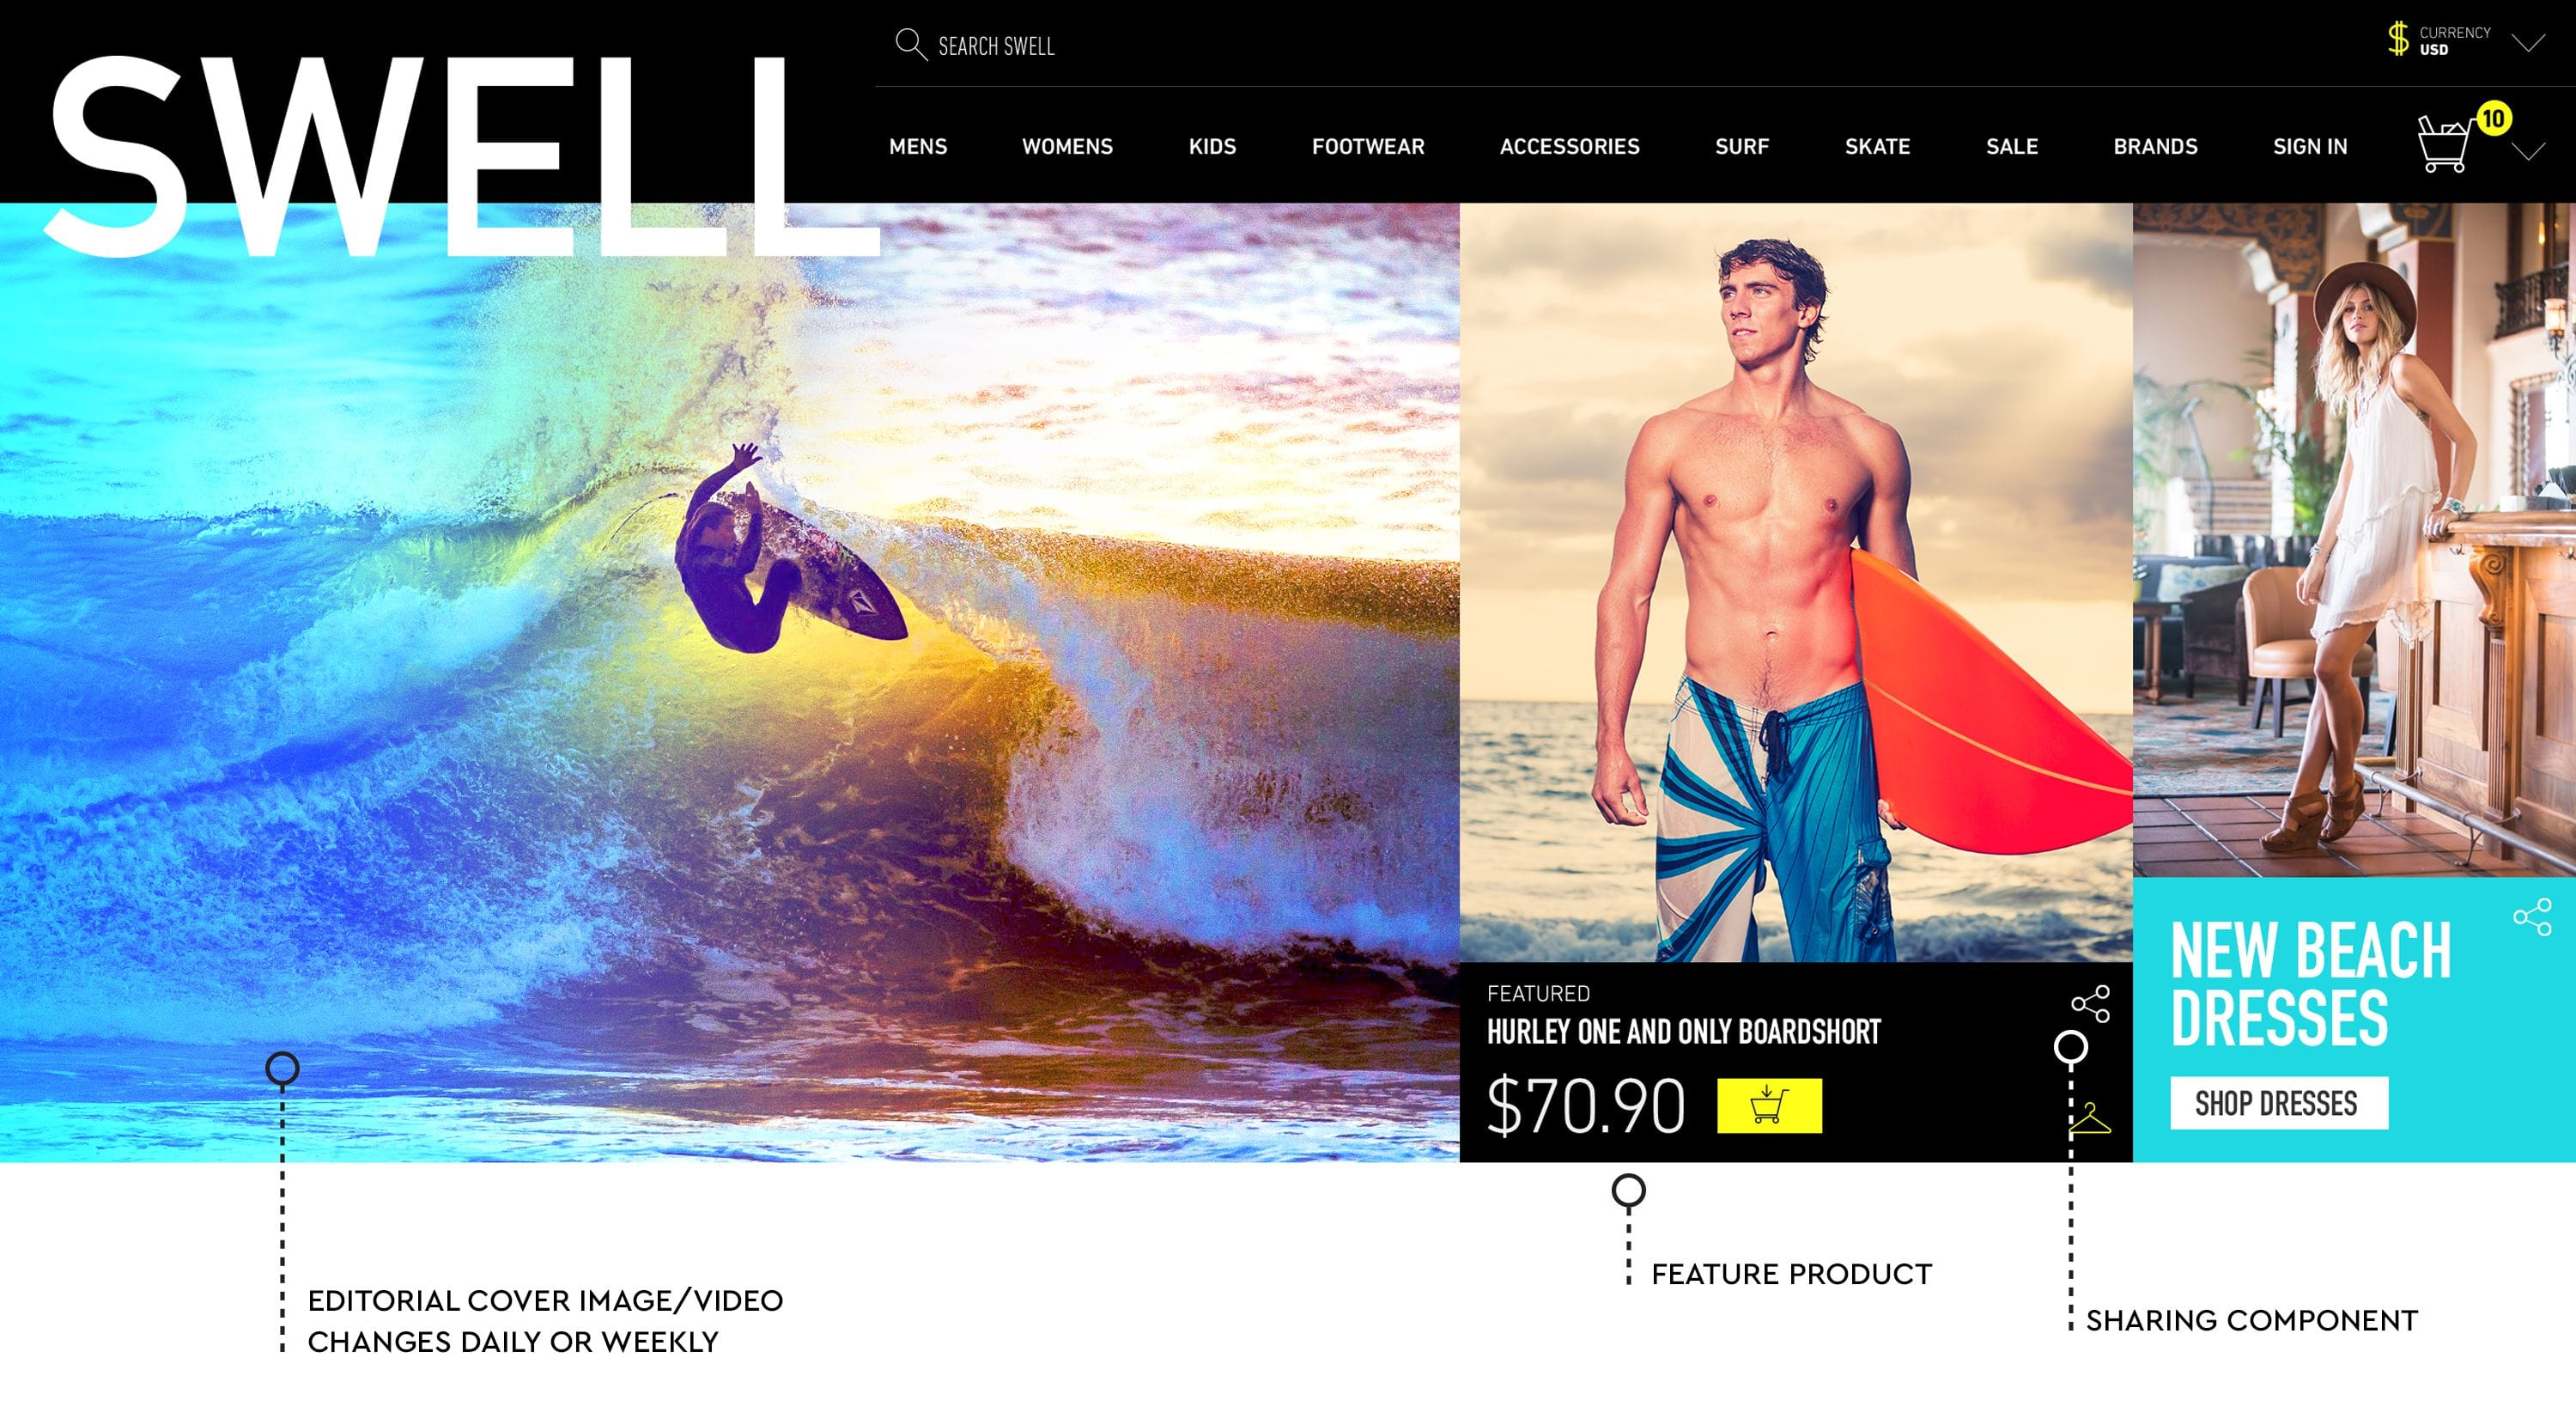 SWELL website design mockup